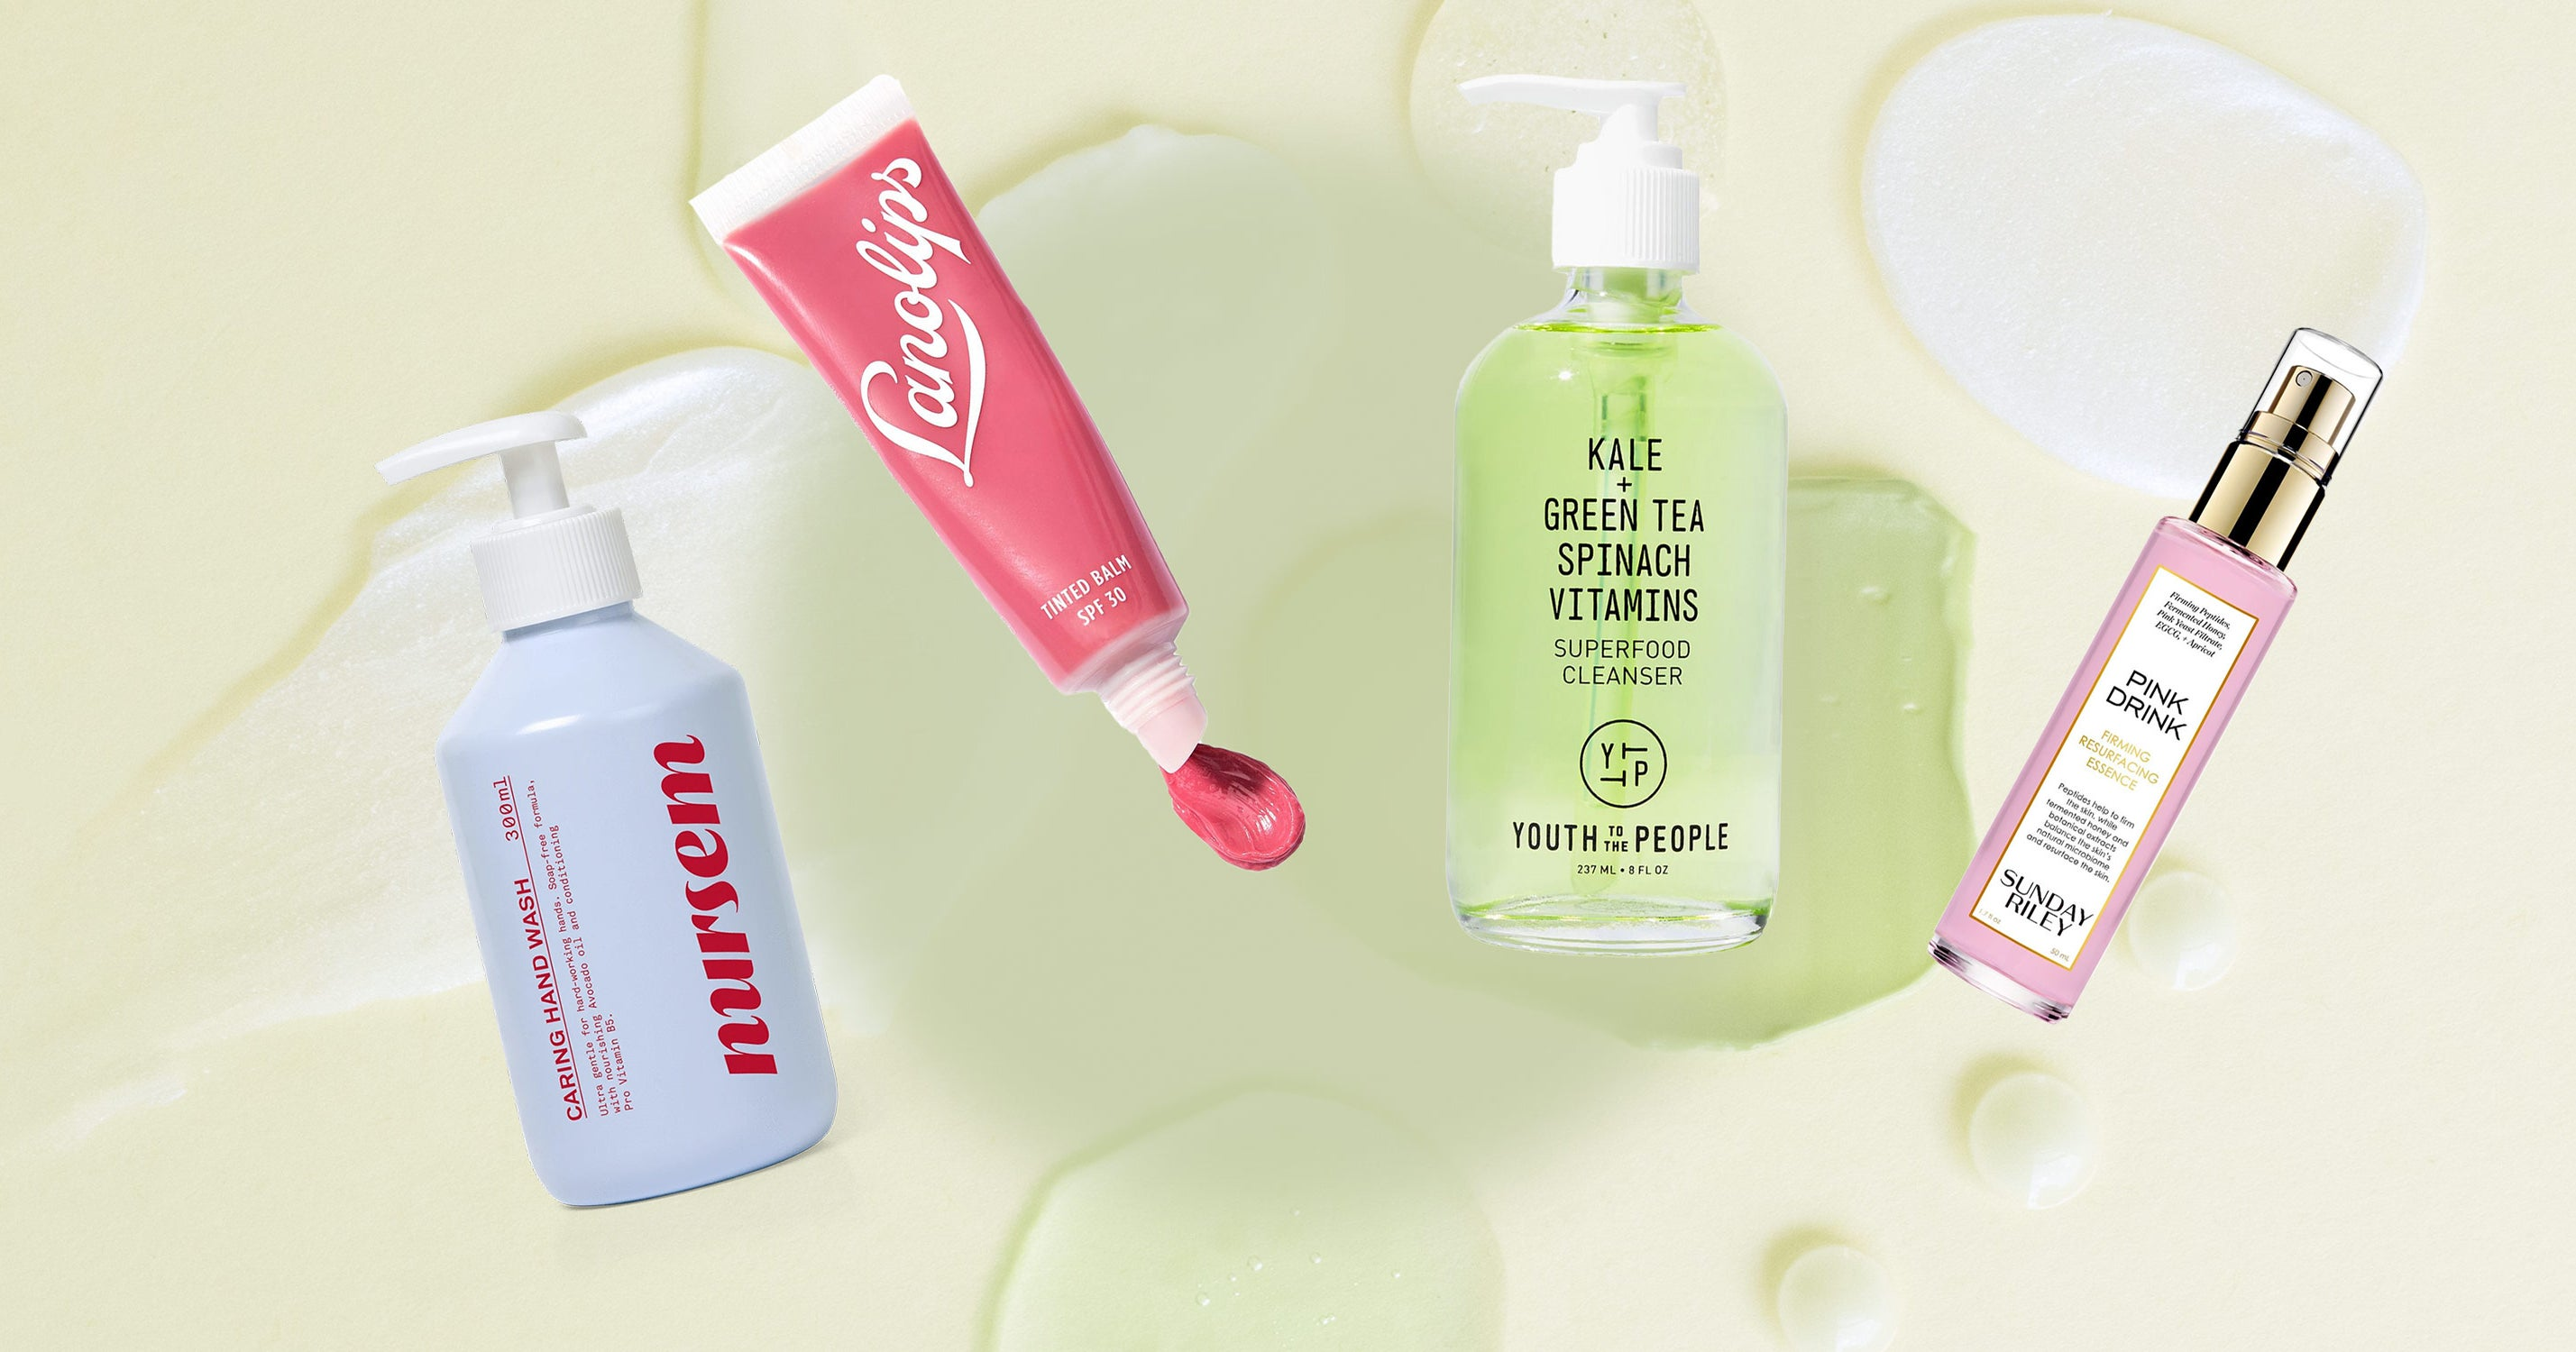 13 Cruelty-Free Brands Making Our Beauty Kits Kinder